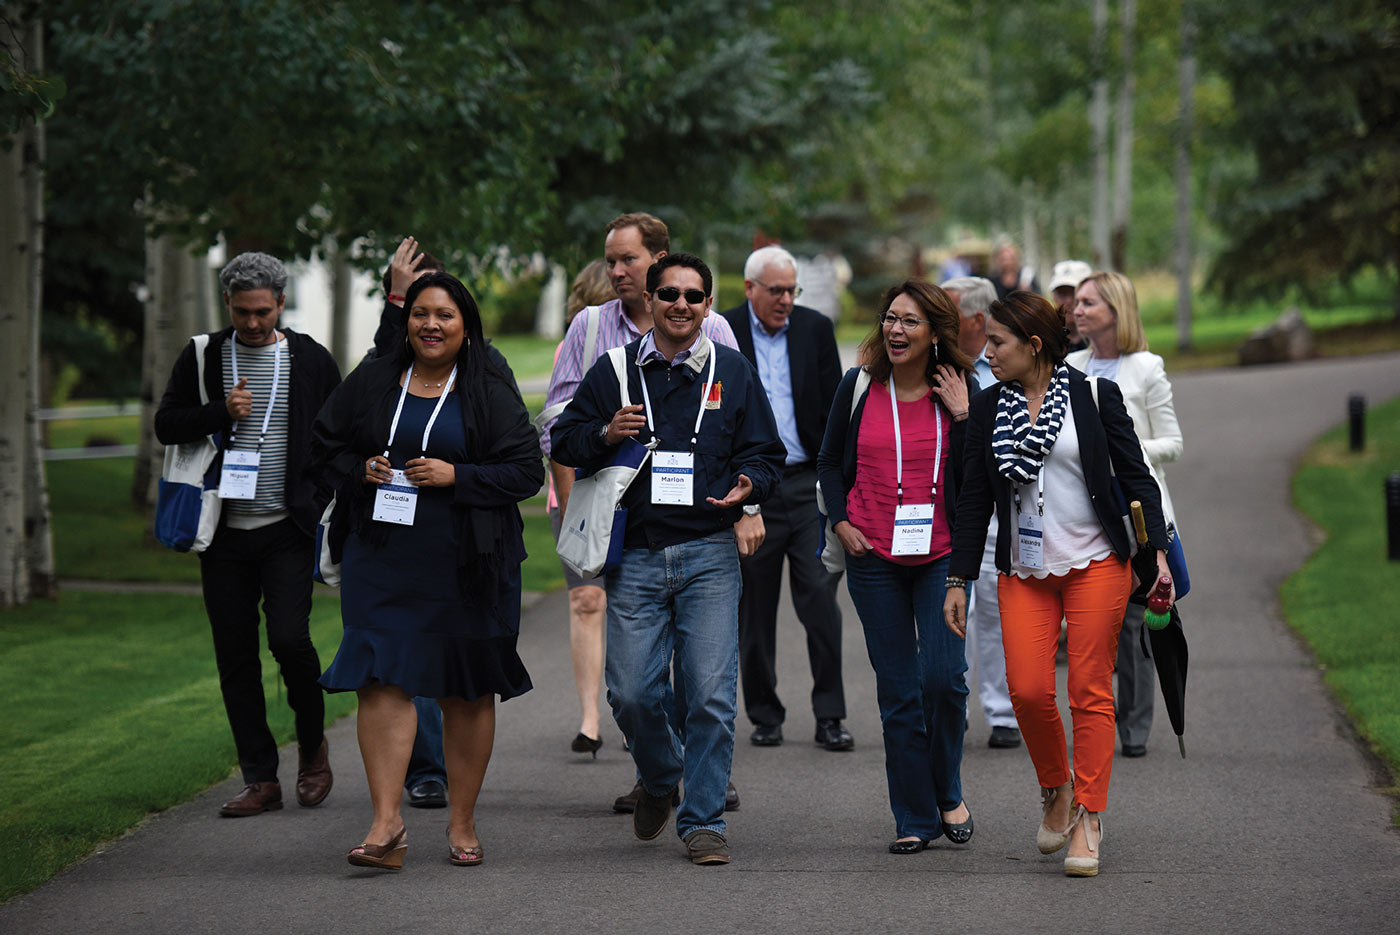 Aspen Action Forum attendees on a path